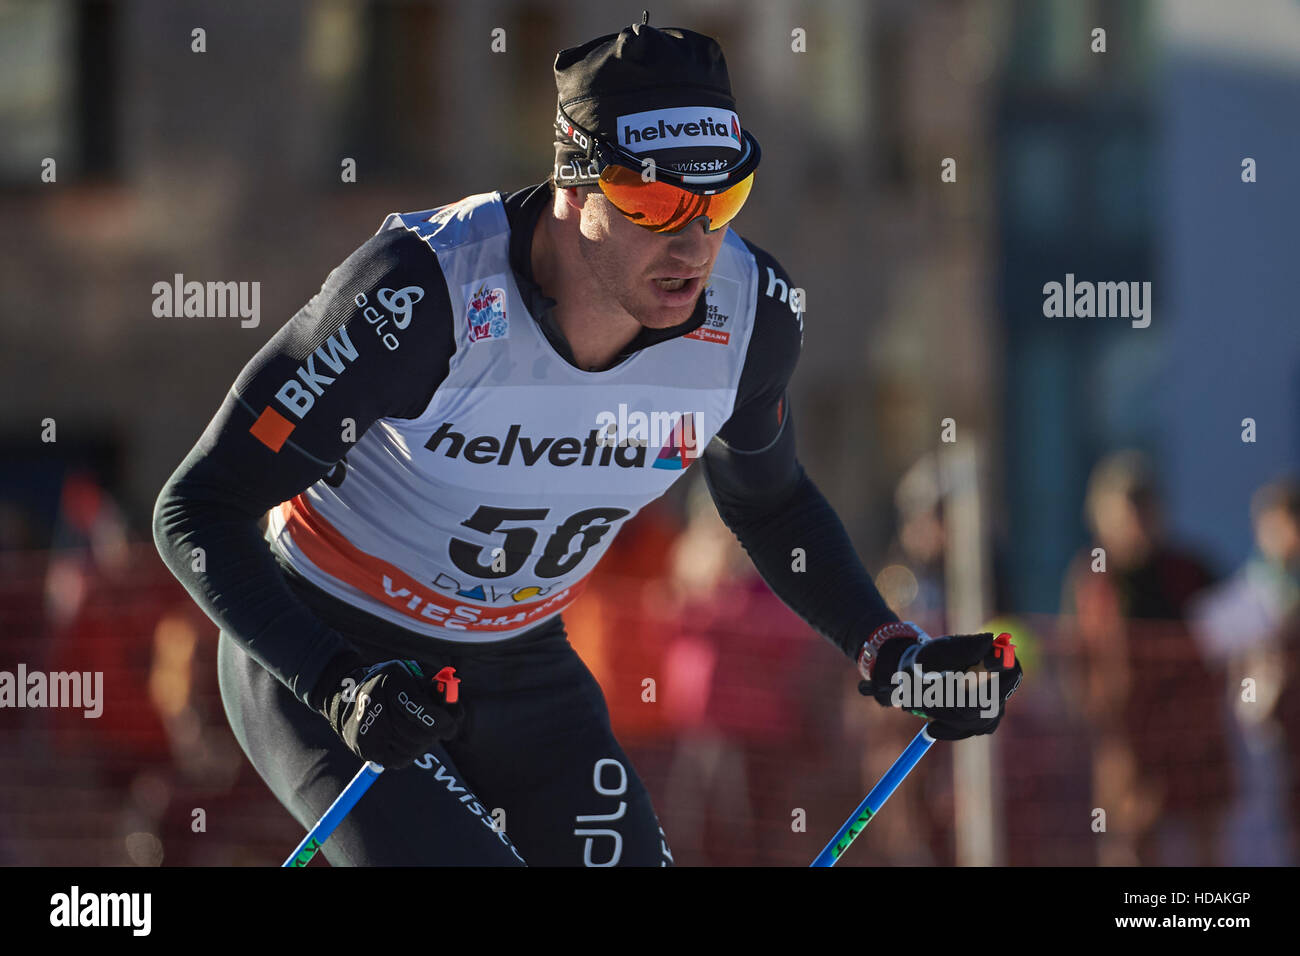 Davos, Switzerland, 10th December 2016. Dario Cologna during the Men's 30 km F competition at the FIS Cross - Stock Image